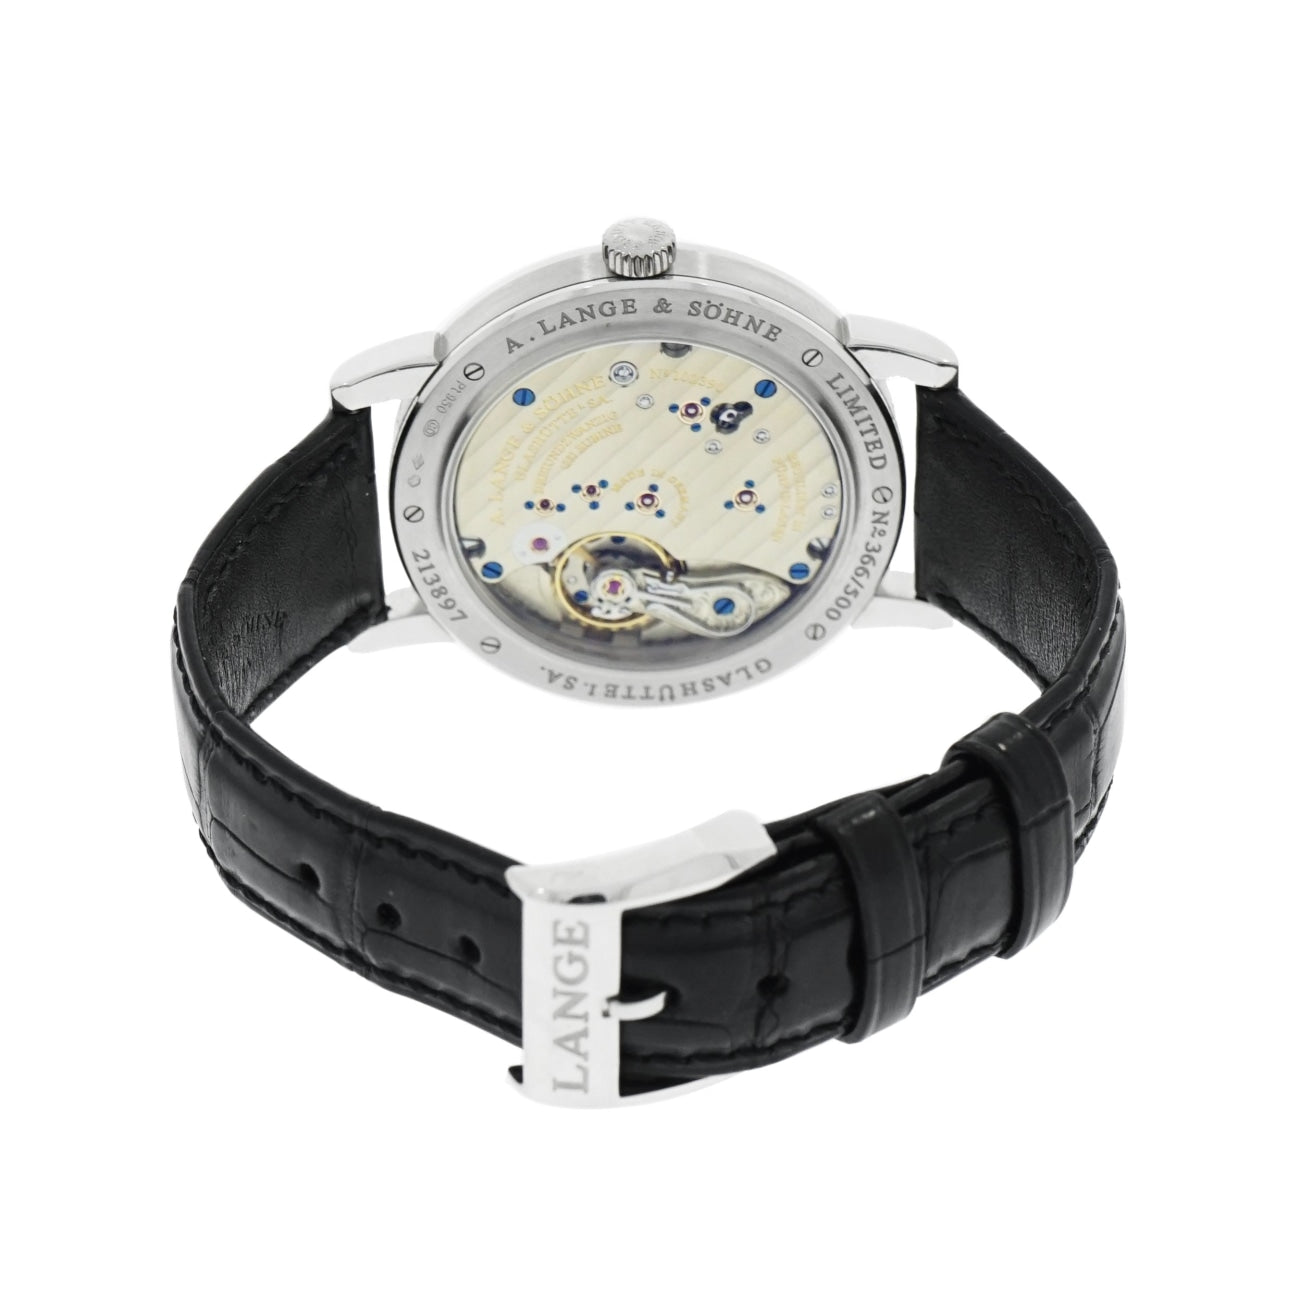 Pre-Owned A. Lange & Sohne Watches - 1815 Limited Edition | Manfredi Jewels